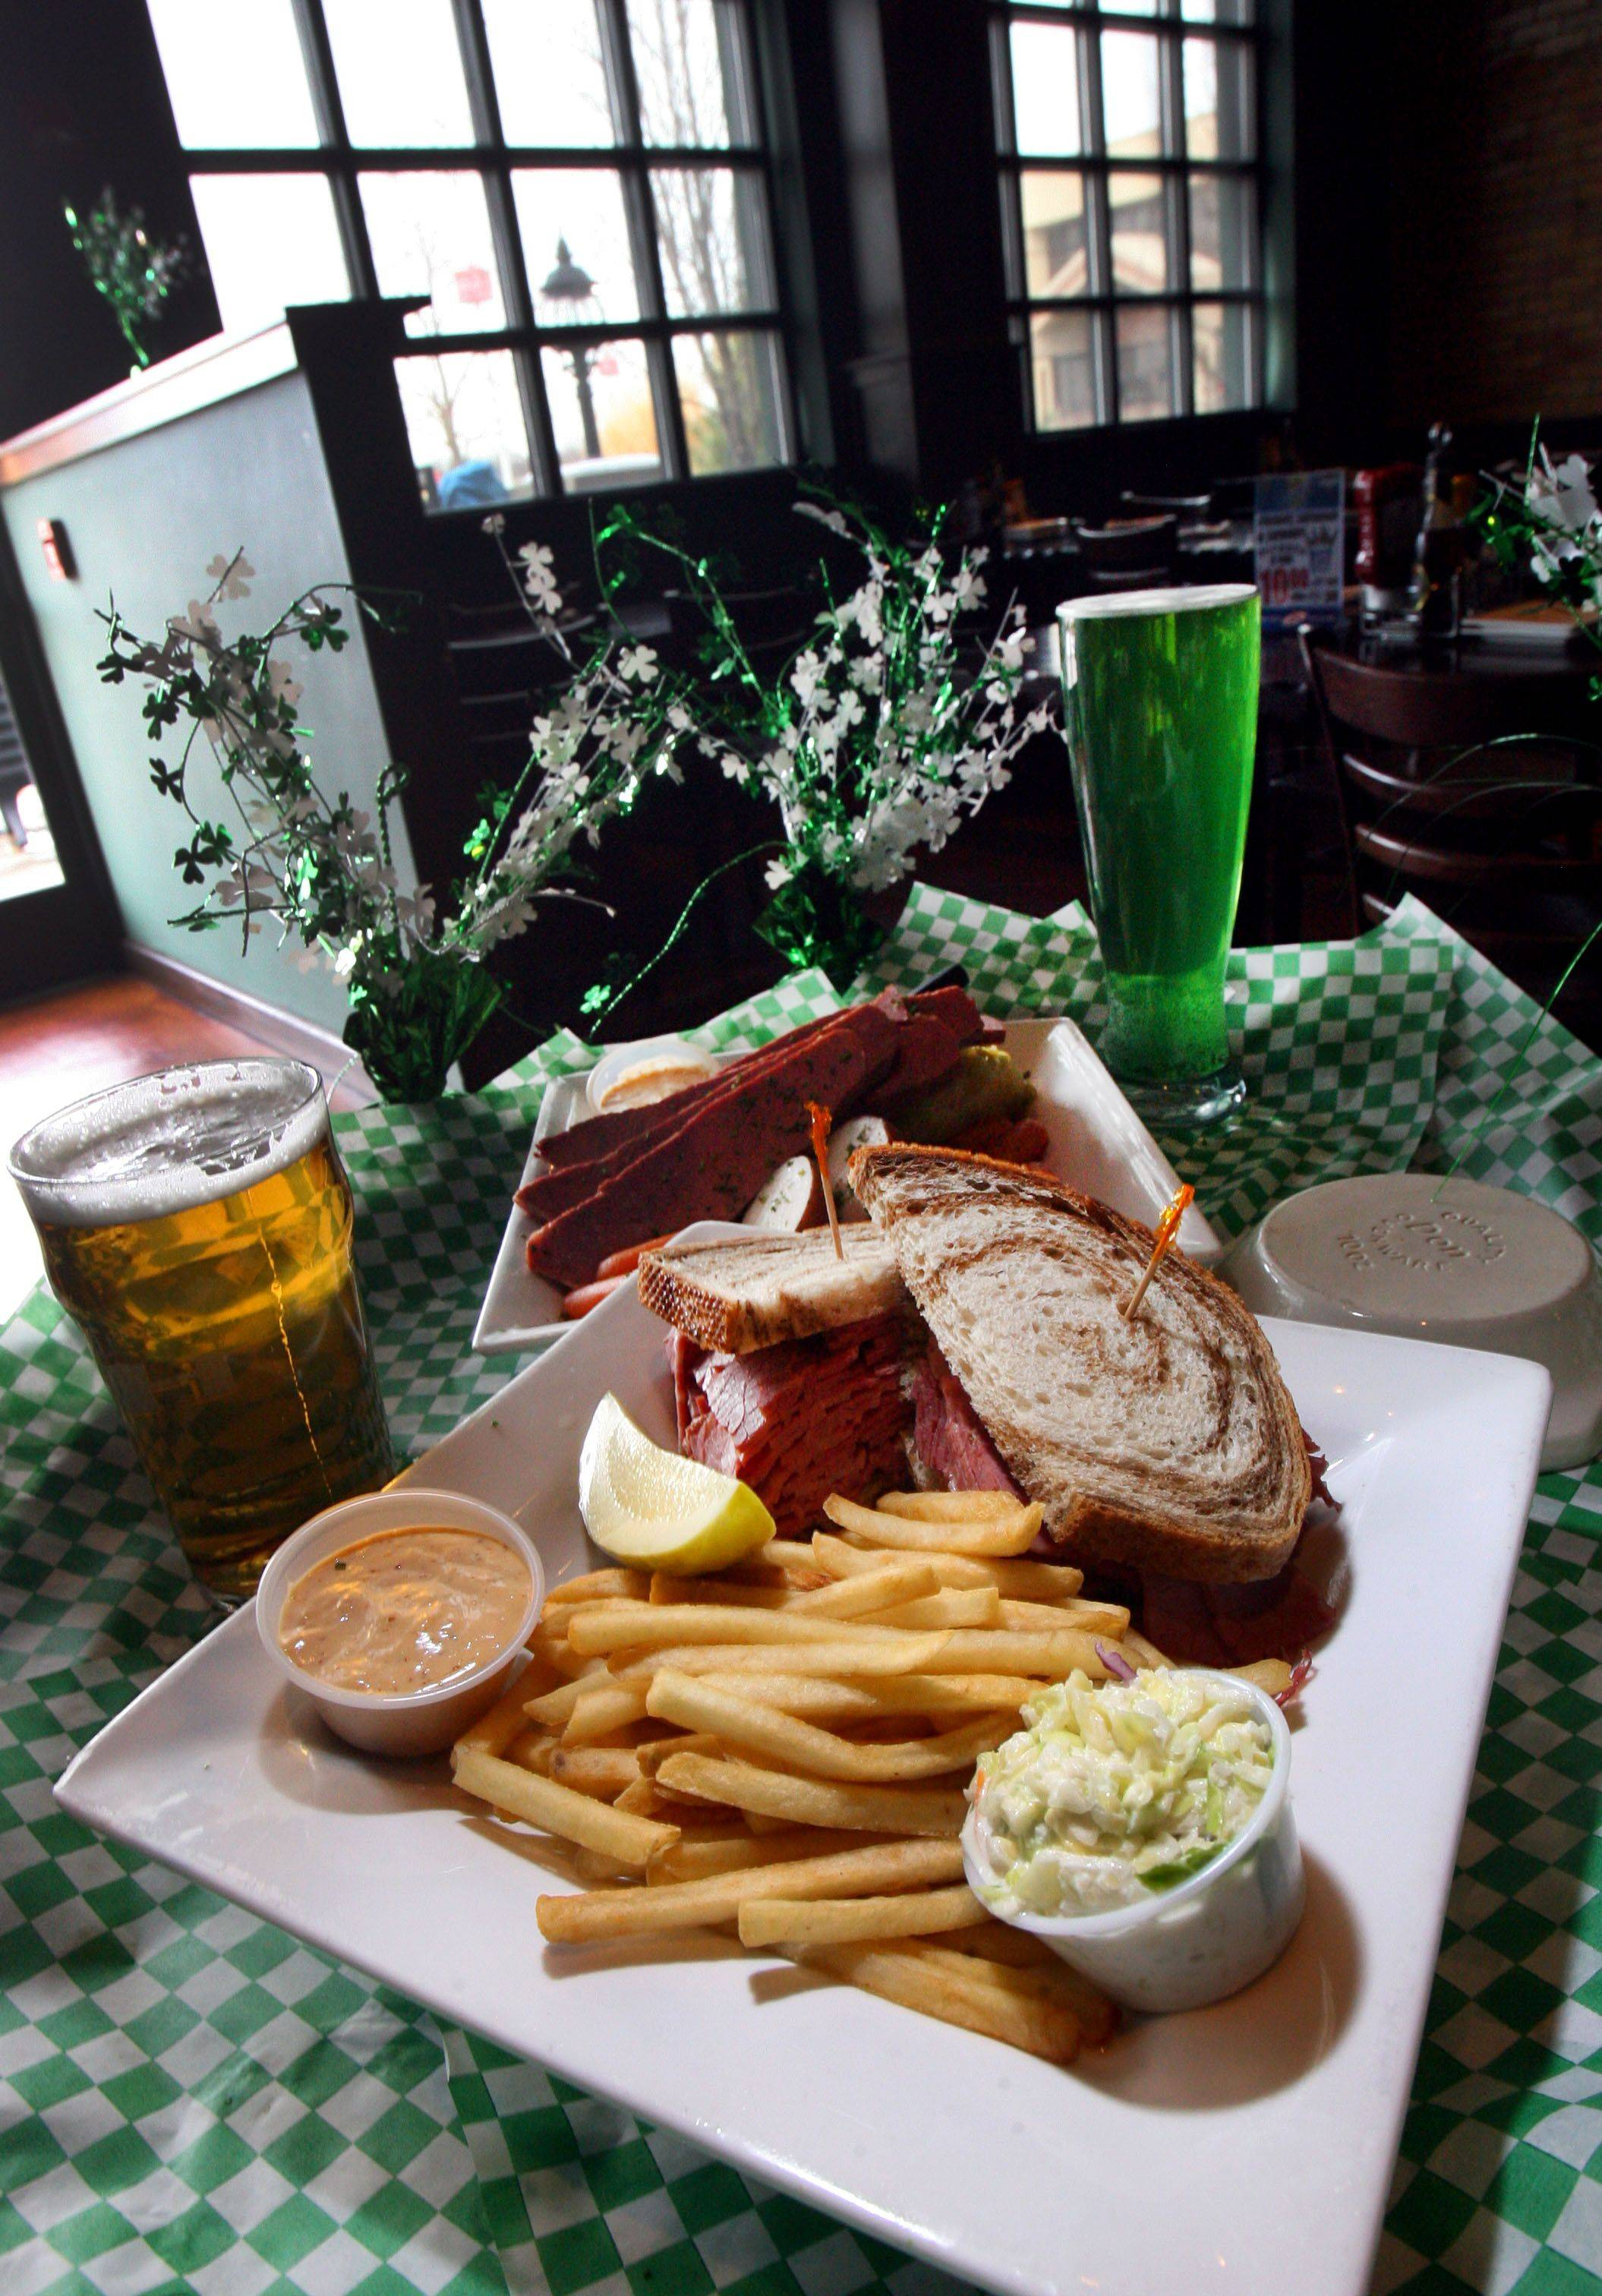 McCarthy's in Vernon Hills will be serving up thousands of pounds of corned beef -- and pouring plenty of beer -- for St. Patrick's Day.